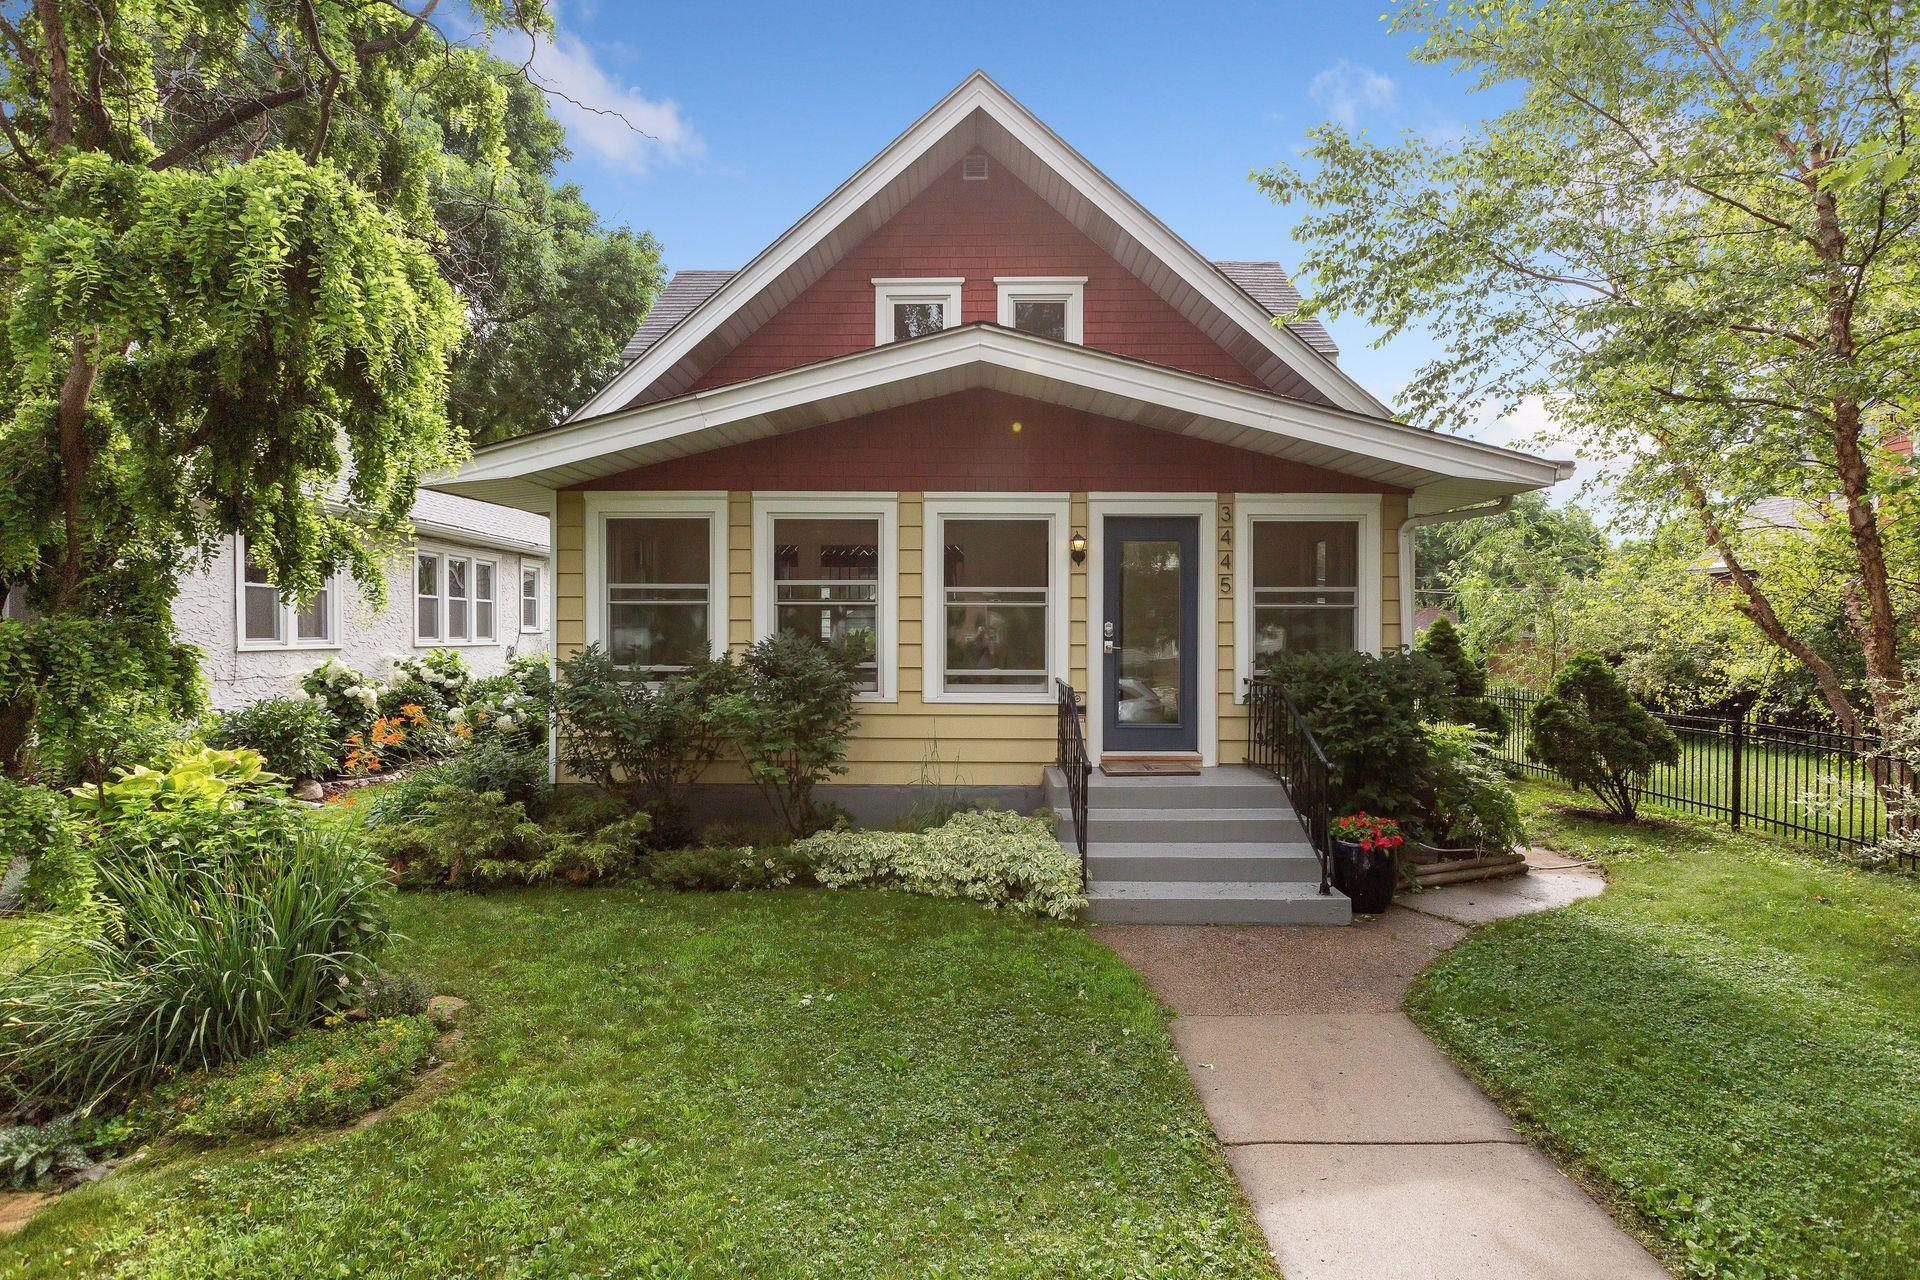 3445 39th S Property Photo - Minneapolis, MN real estate listing